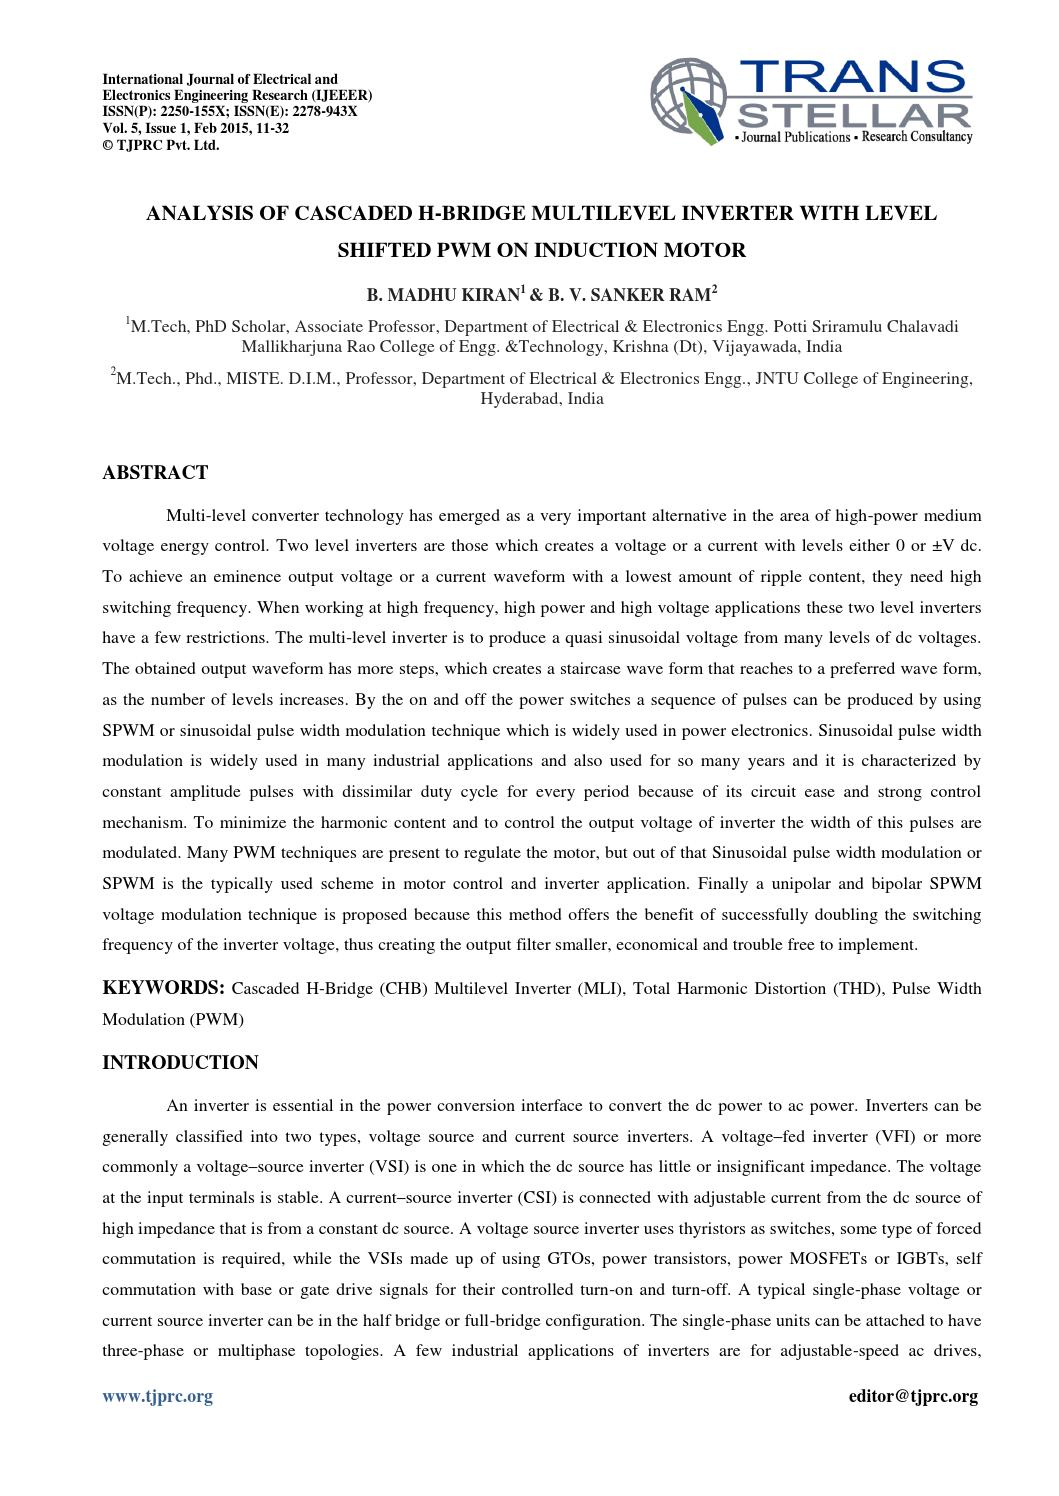 Multilevel inverter phd thesis